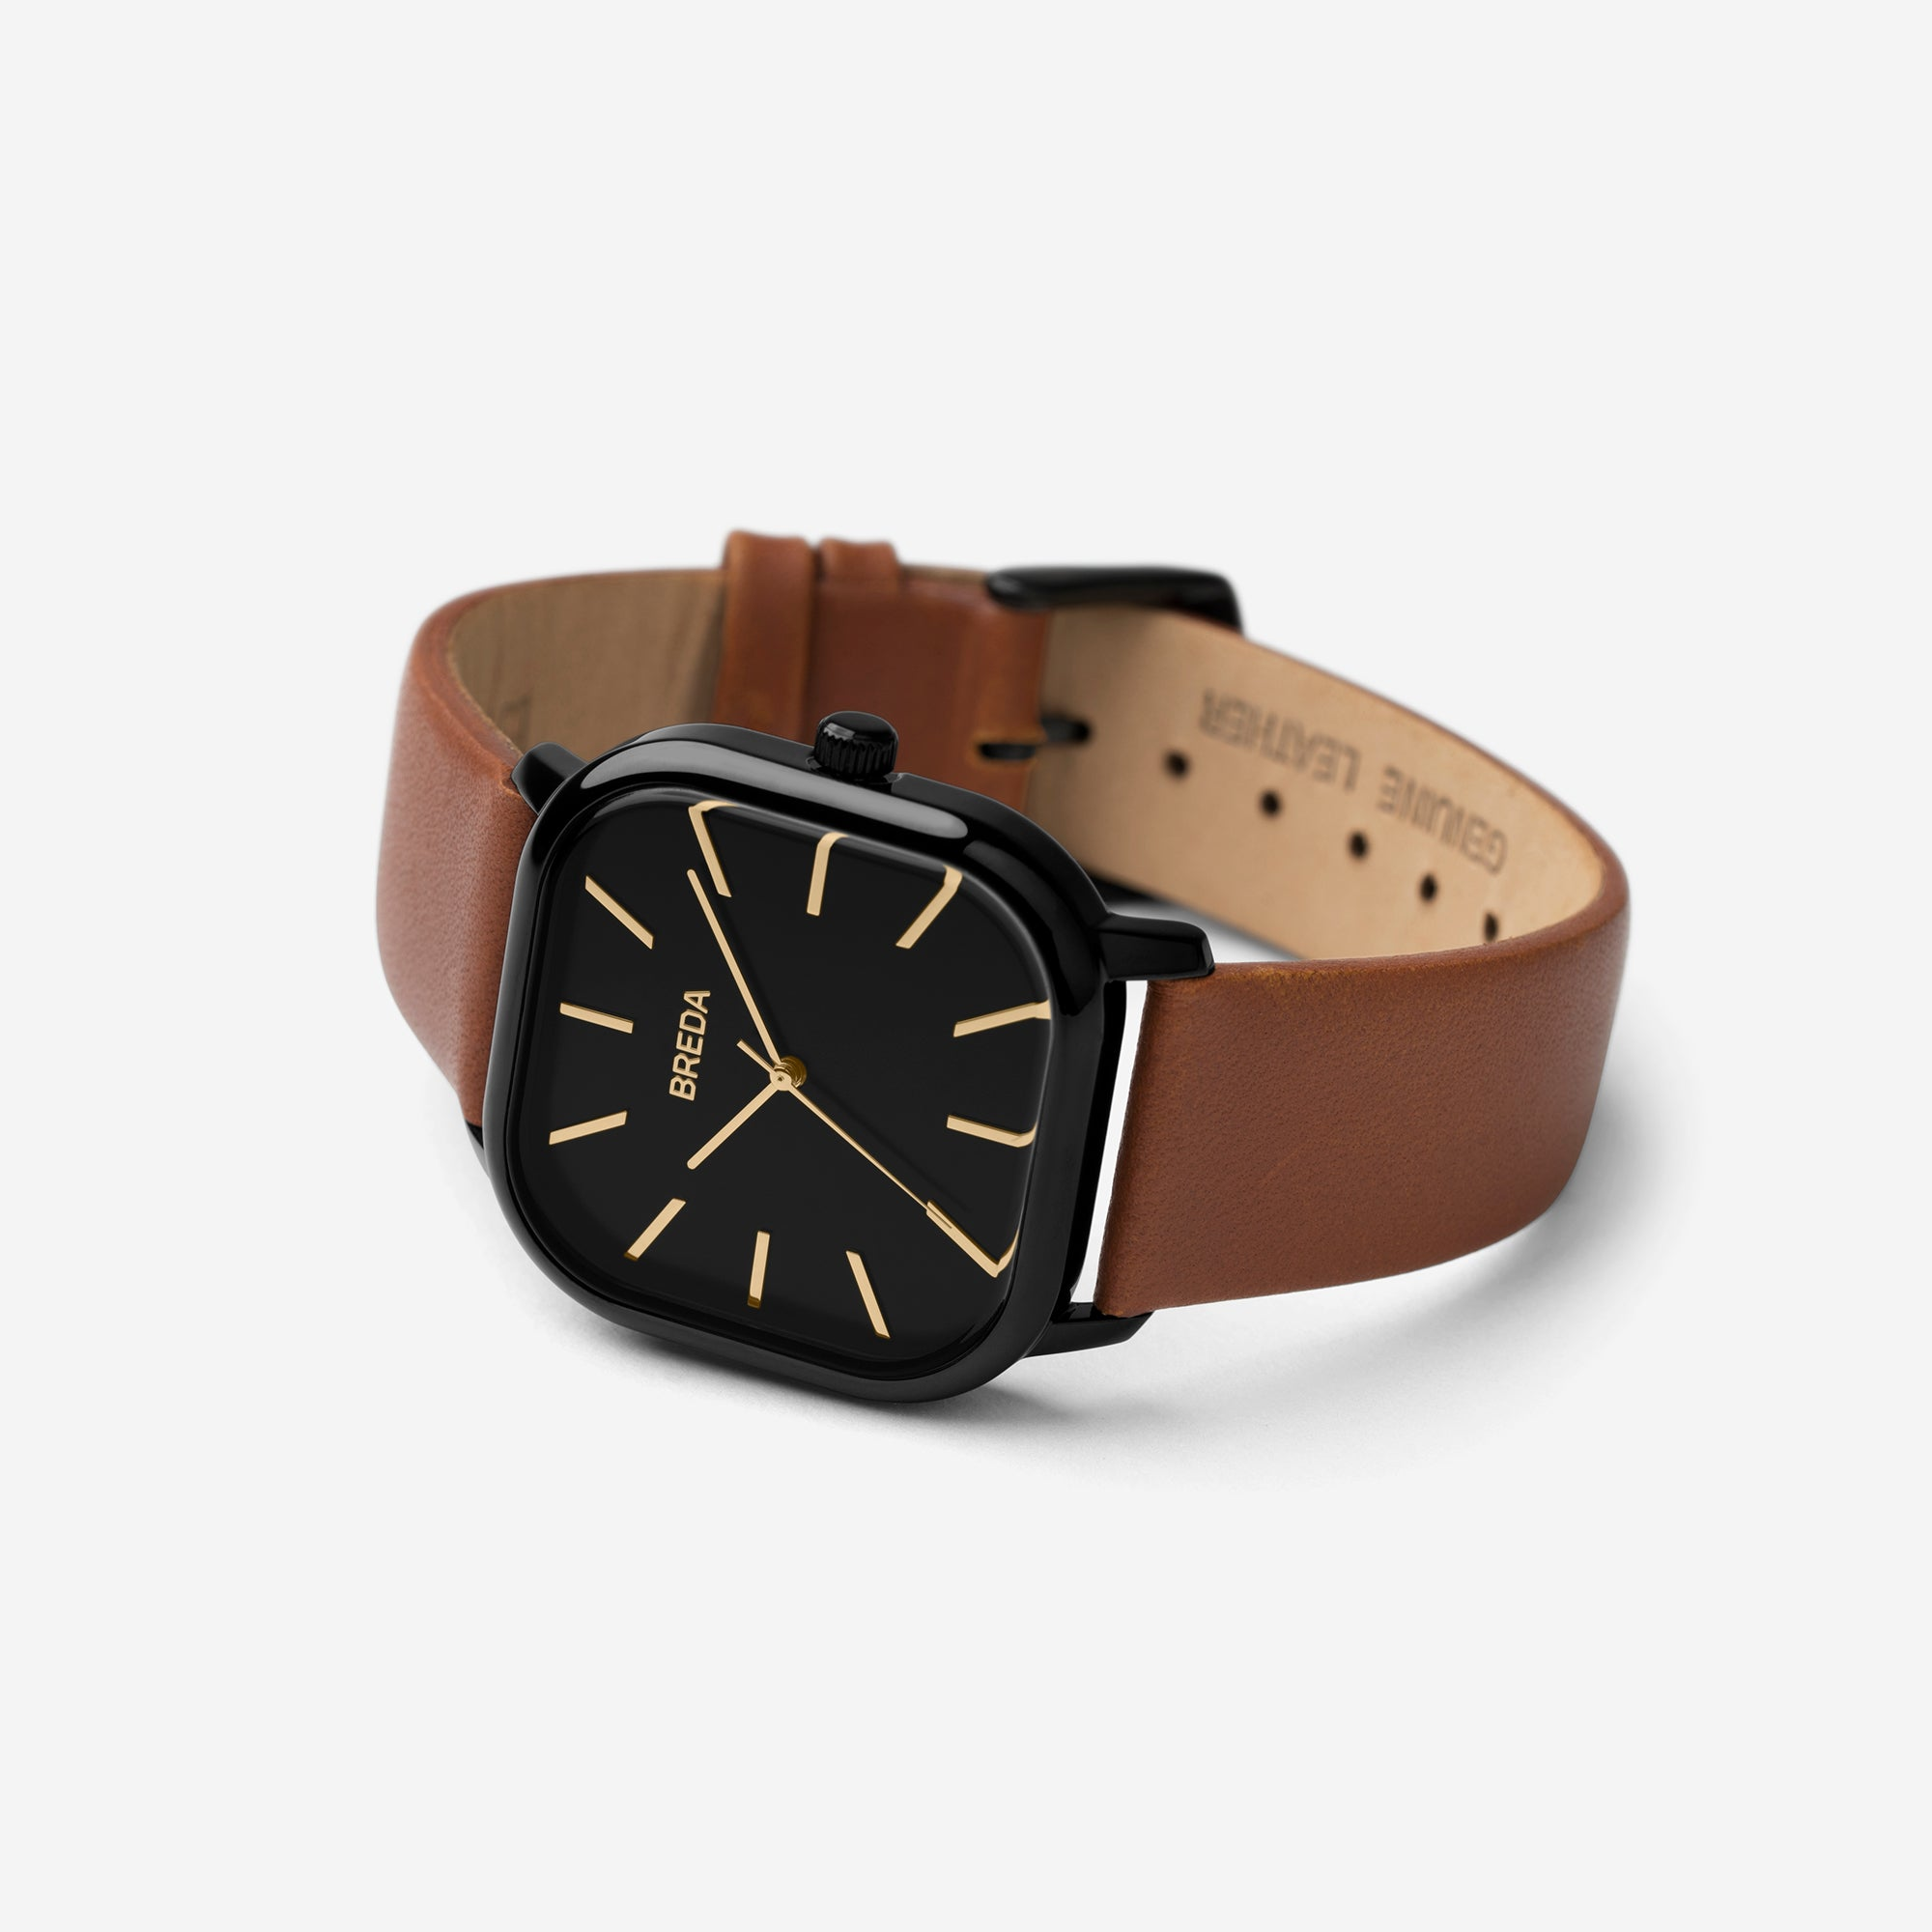 //cdn.shopify.com/s/files/1/0879/6650/products/breda-visser-1728g-black-brown-leather-watch-angle_c775999d-bfe1-4466-b819-5efdb884fc1a_1024x1024.jpg?v=1543254638